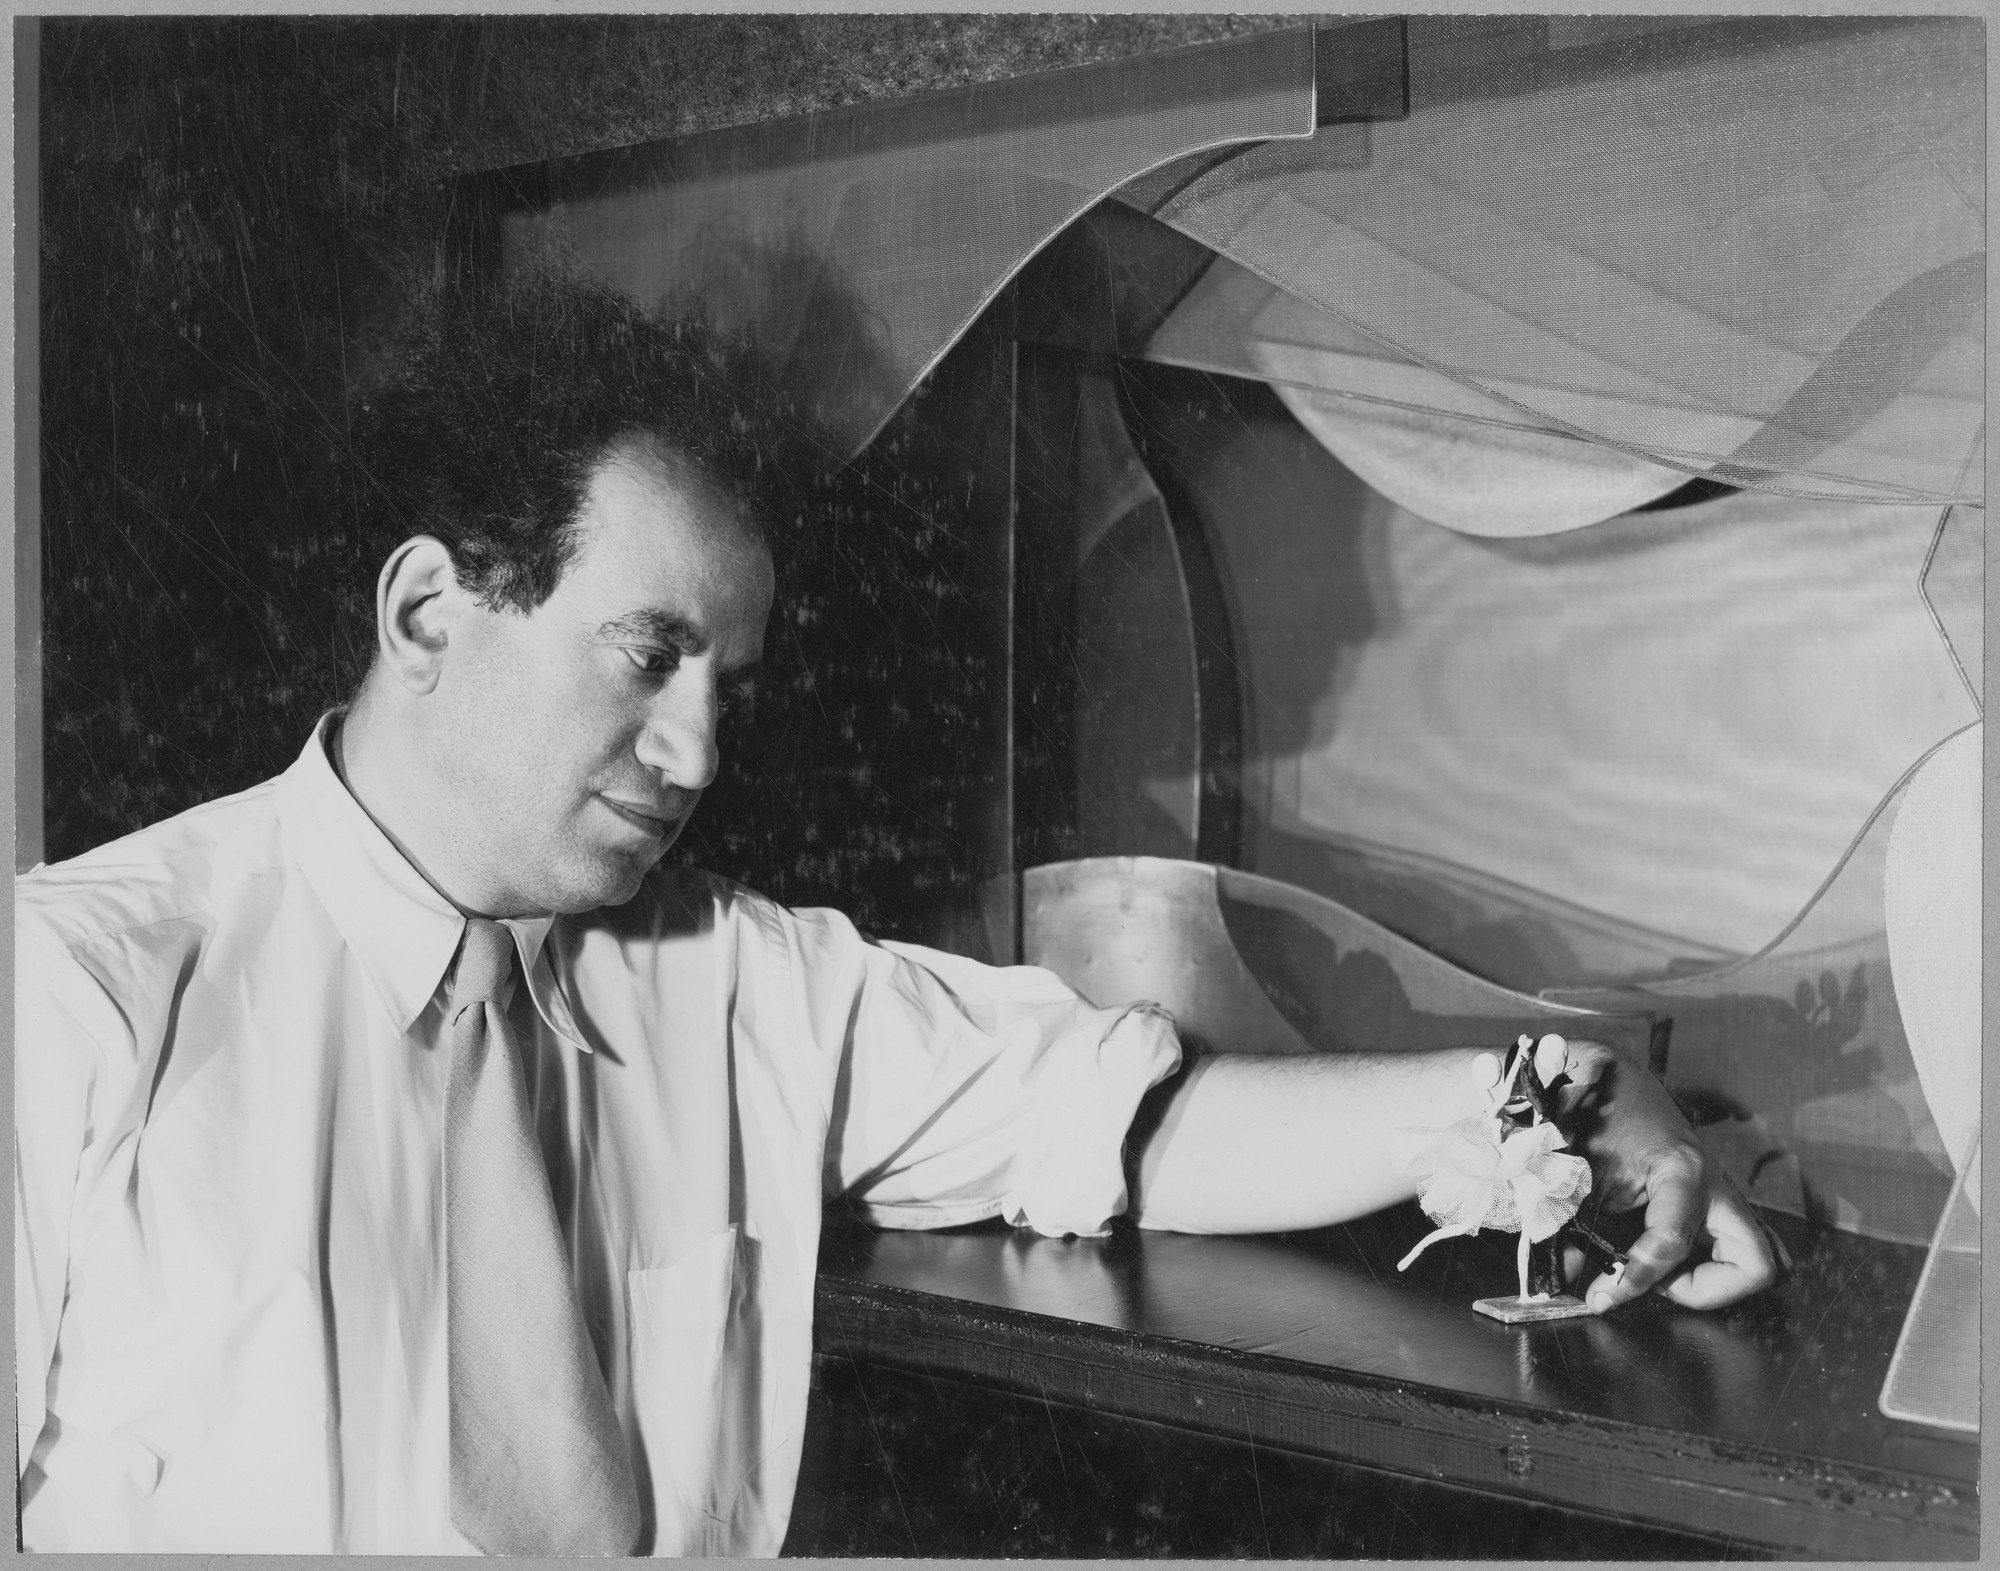 """Boris Aronson with his model stage for projected scenery, 1947,"" at the exhibition, ""Boris Aronson:  Stage Designs and Models."" June 24, 1947–October 10, 1947. Photographic Archive. The Museum of Modern Art Archives, New York. IN354.1. Photograph by Soichi Sunami."